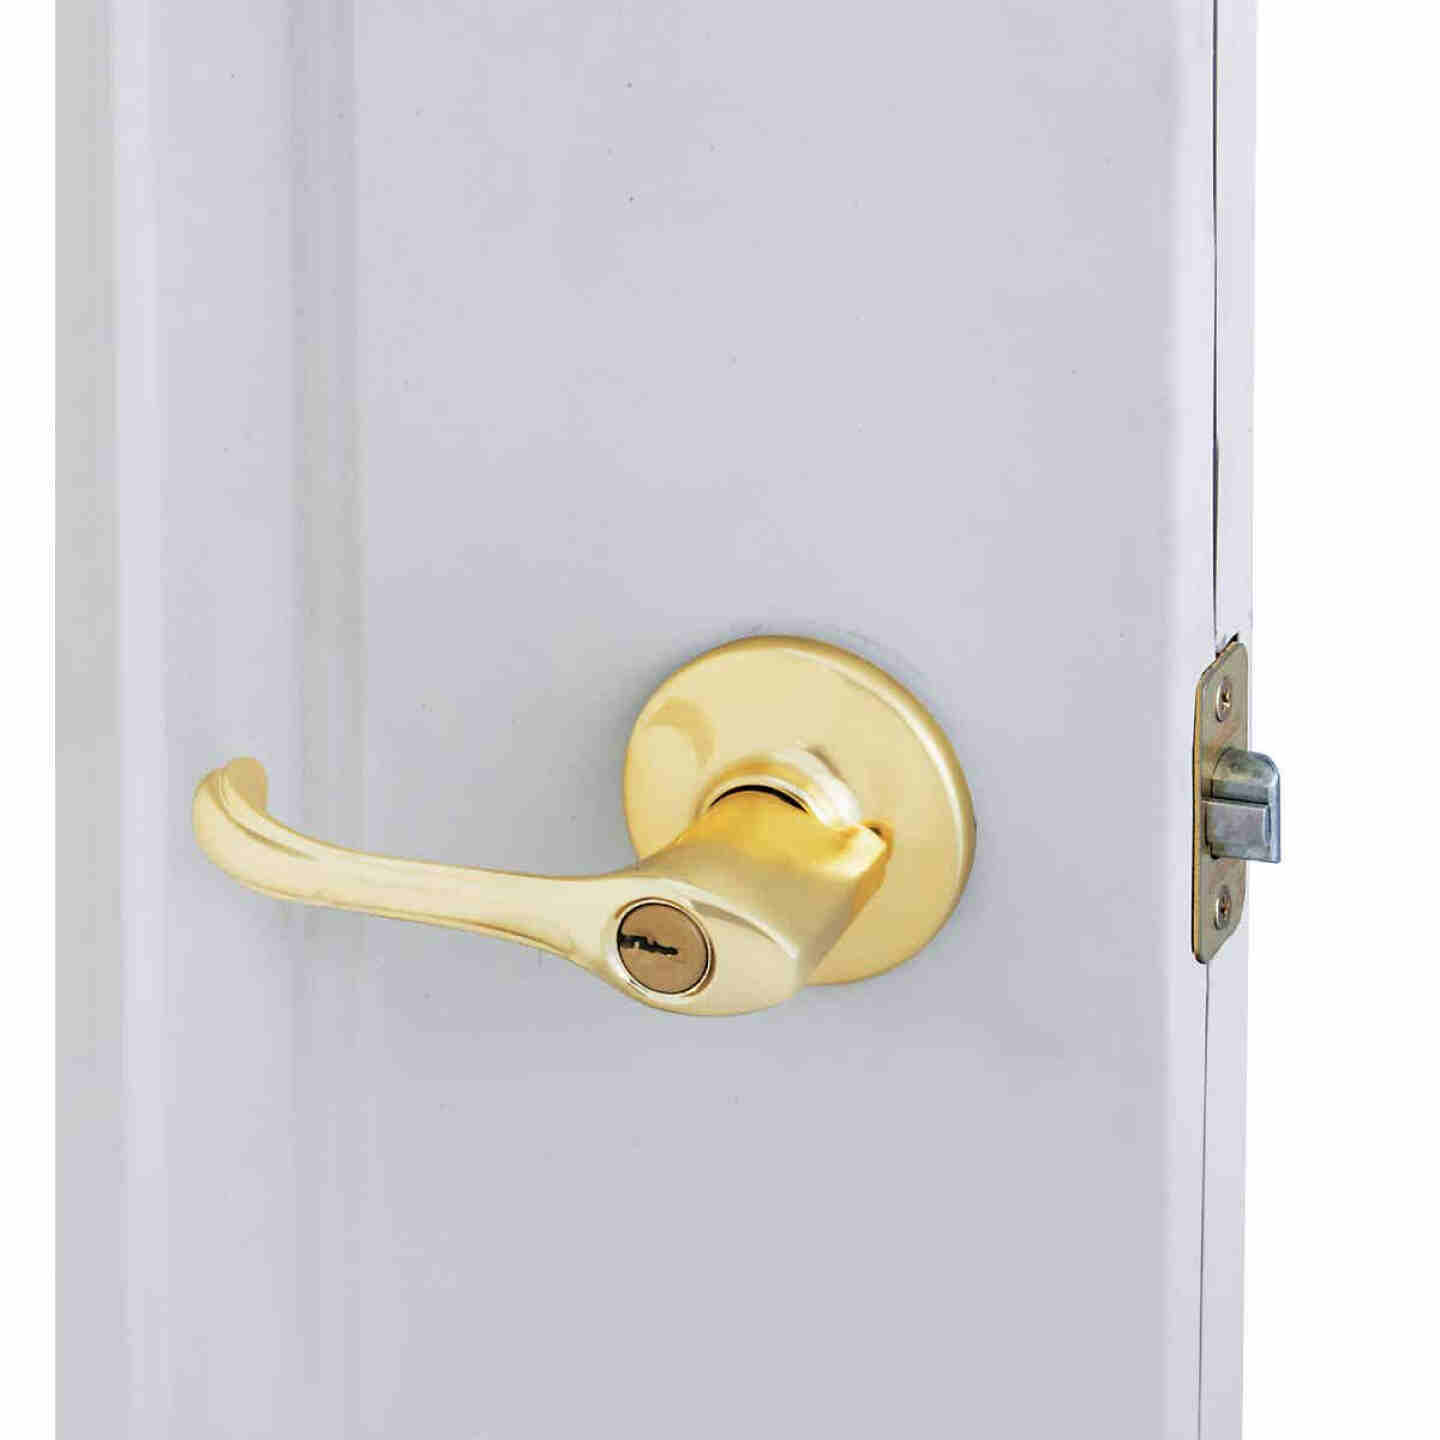 Kwikset Polished Brass Dorian Entry Door Lever  Image 2